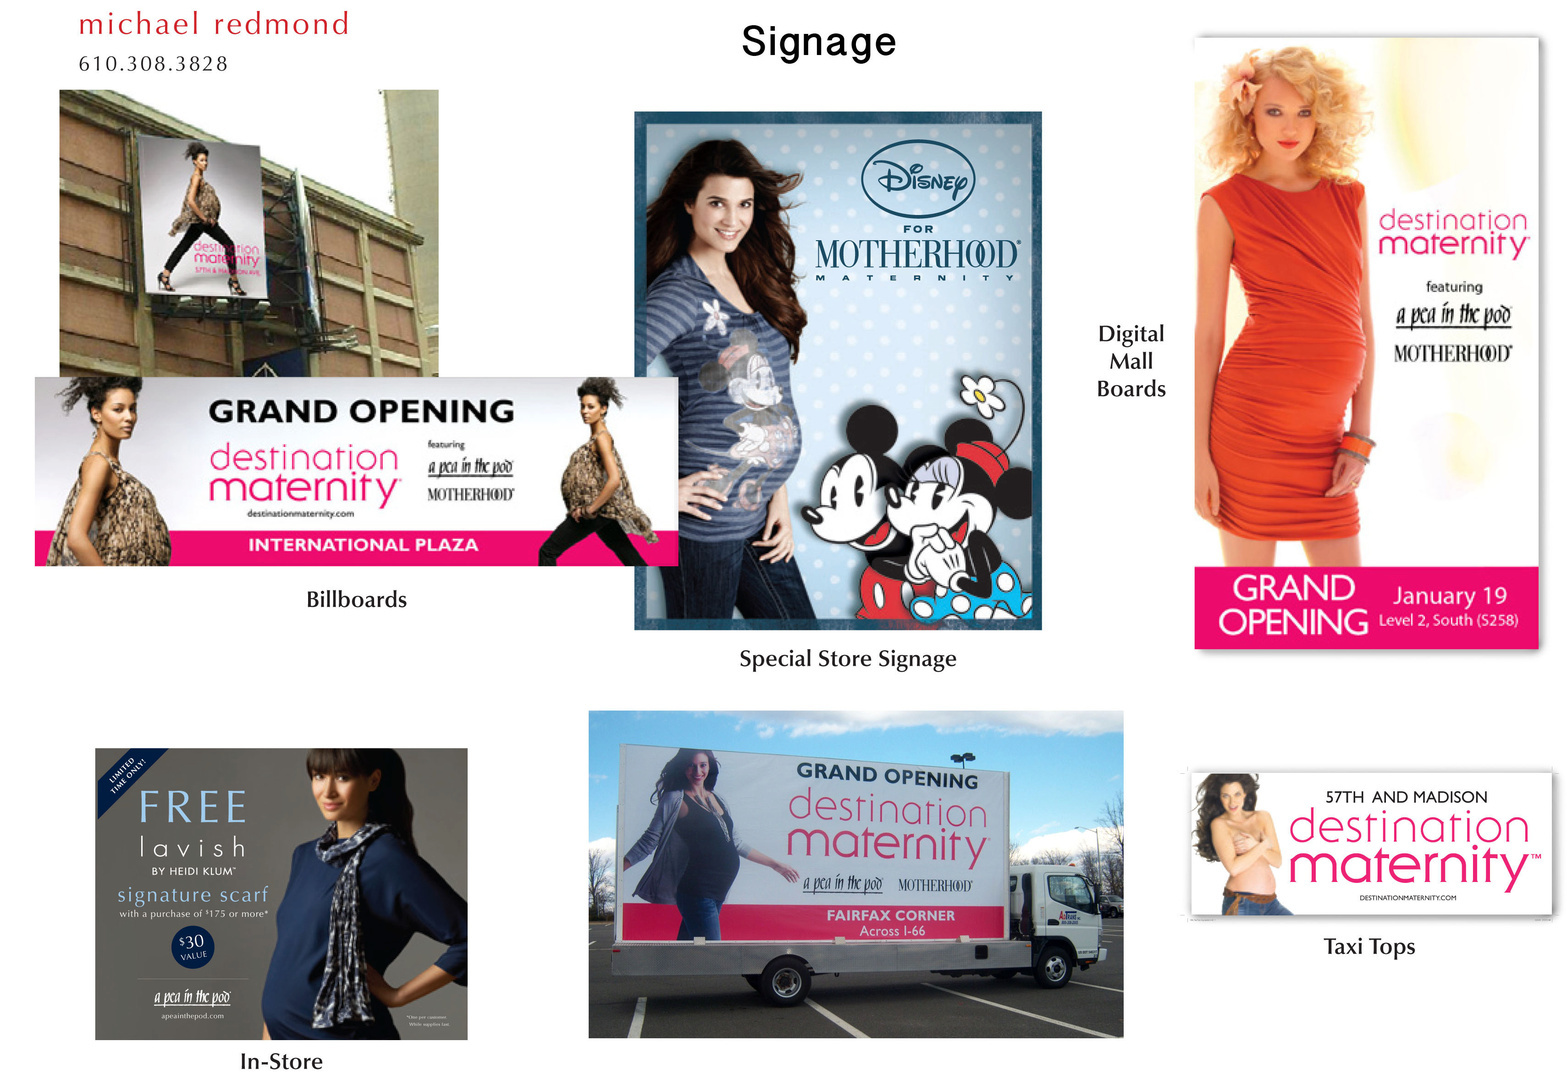 Signage - billboards, mobile, digital mall signs, in-store rack toppers, taxi-toppers.